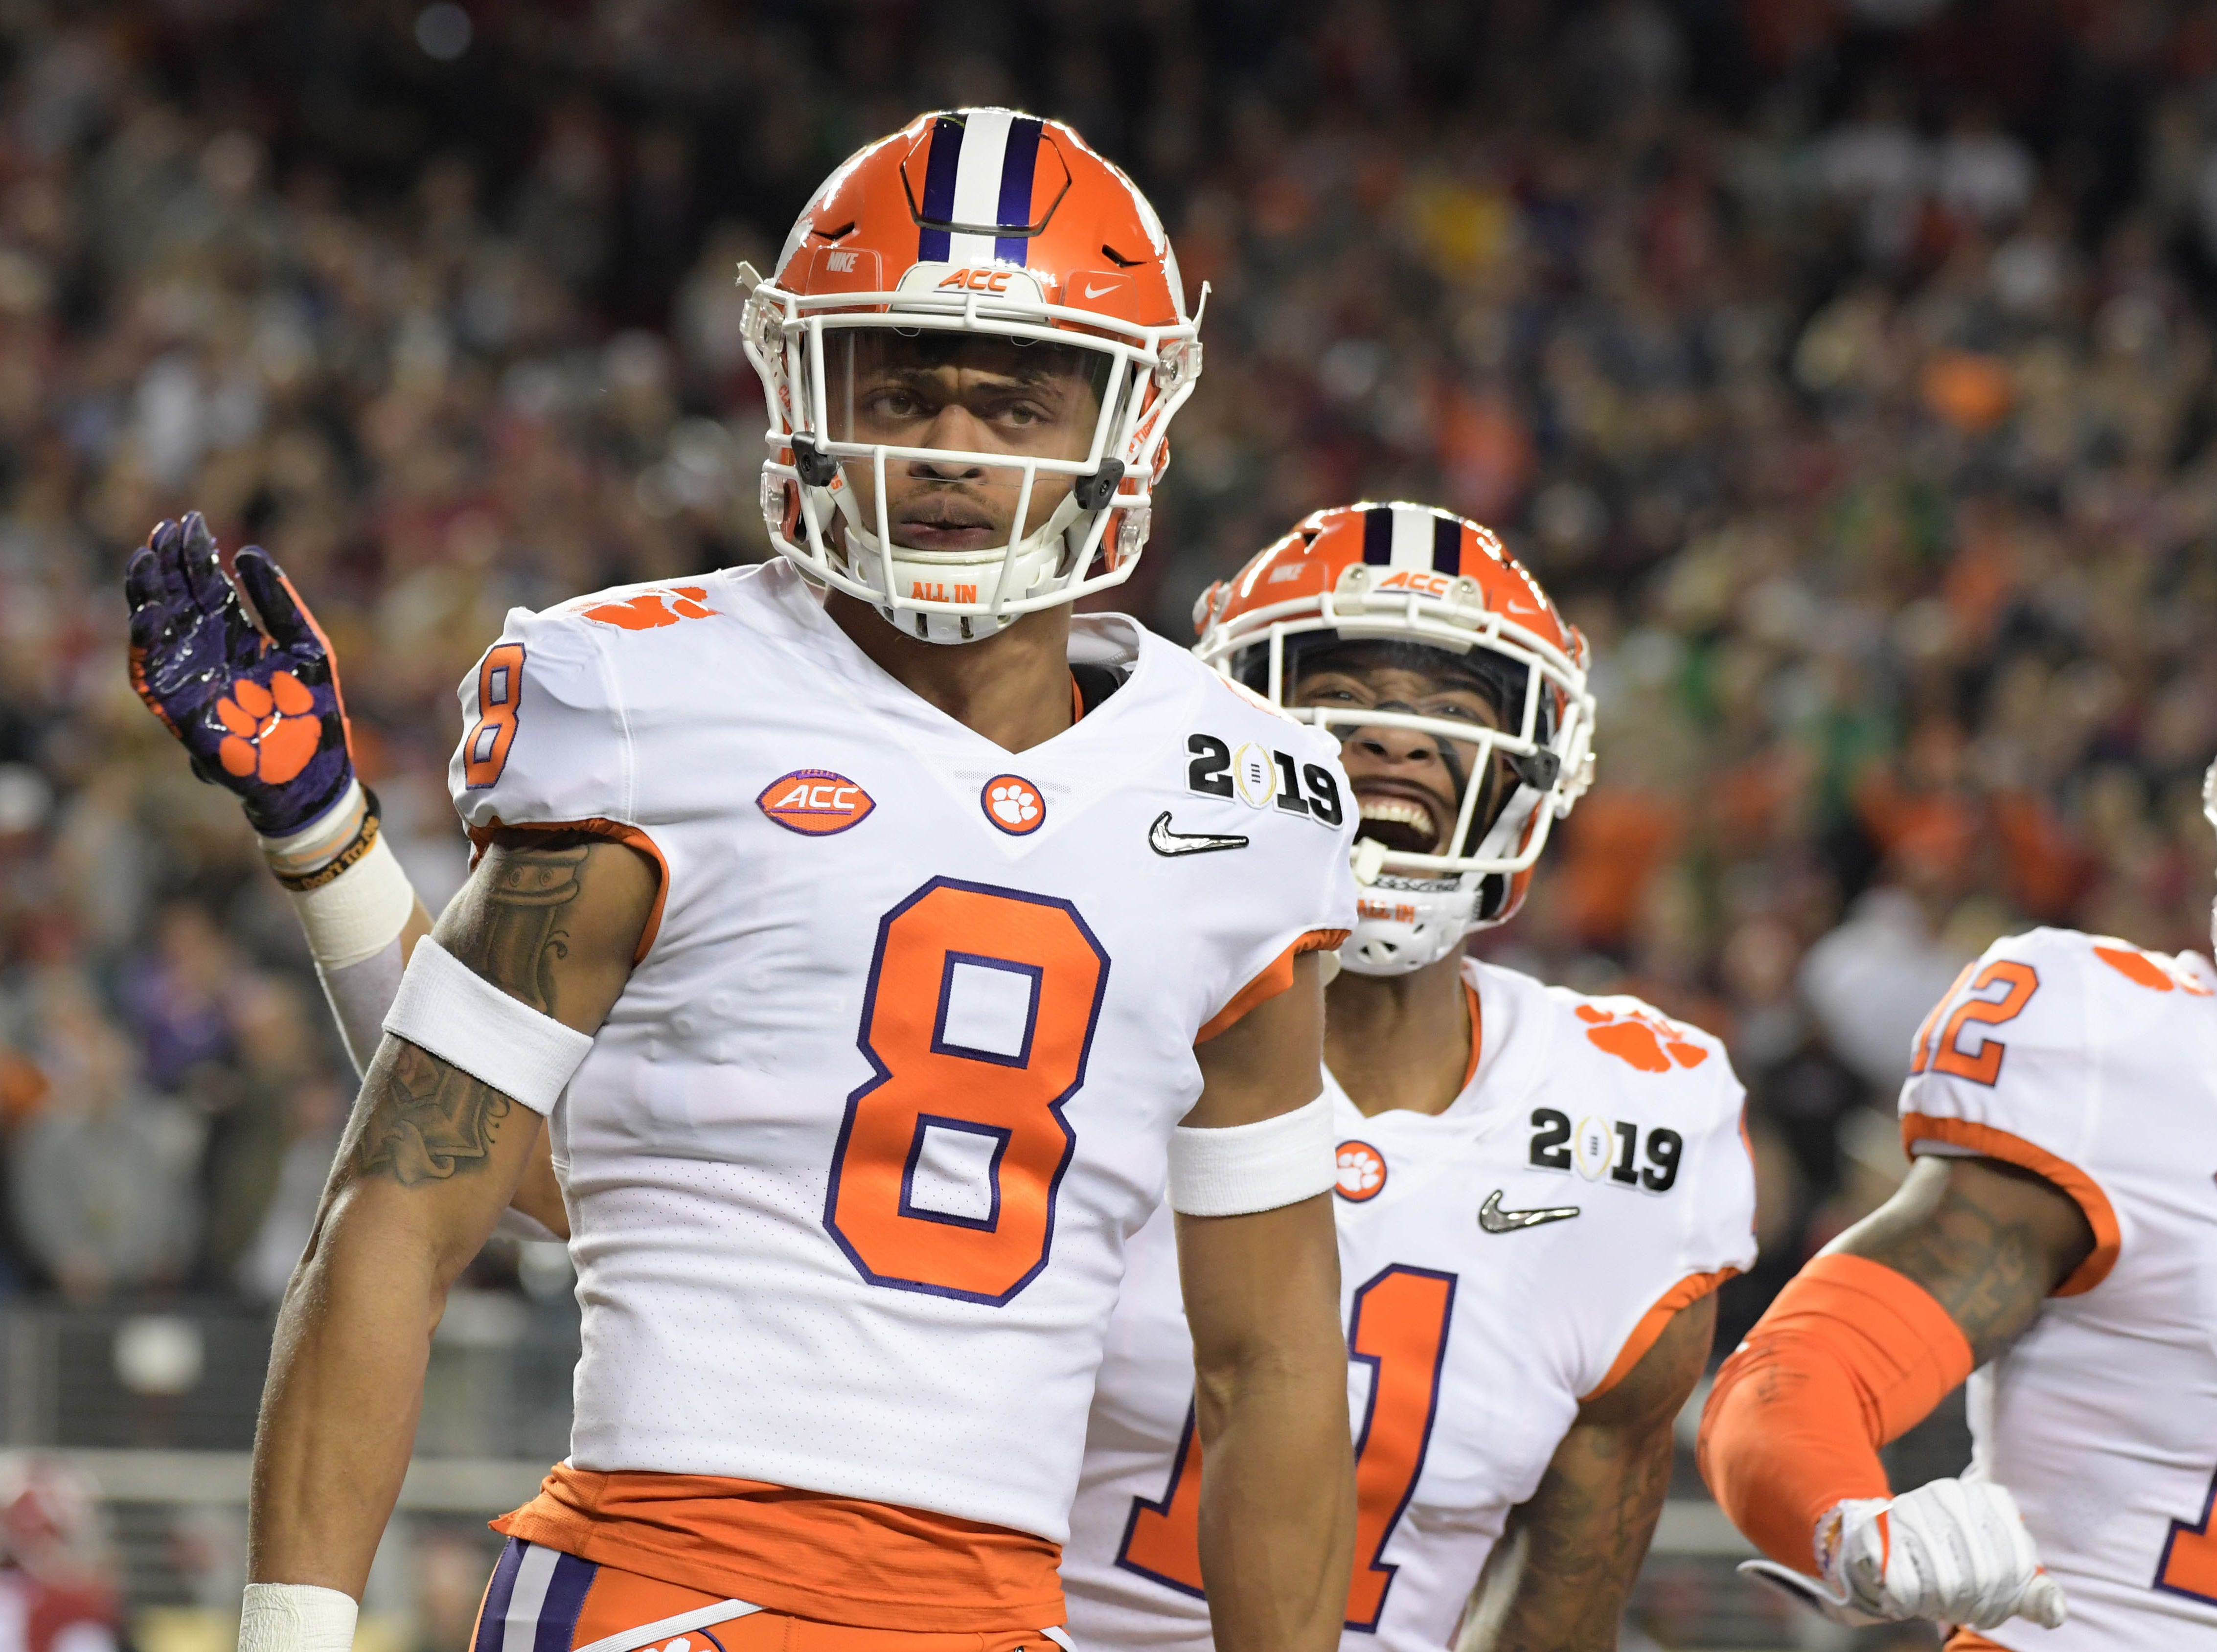 Clemson cornerback A.J. Terrell celebrates after returning an interception for a touchdown in the first quarter.